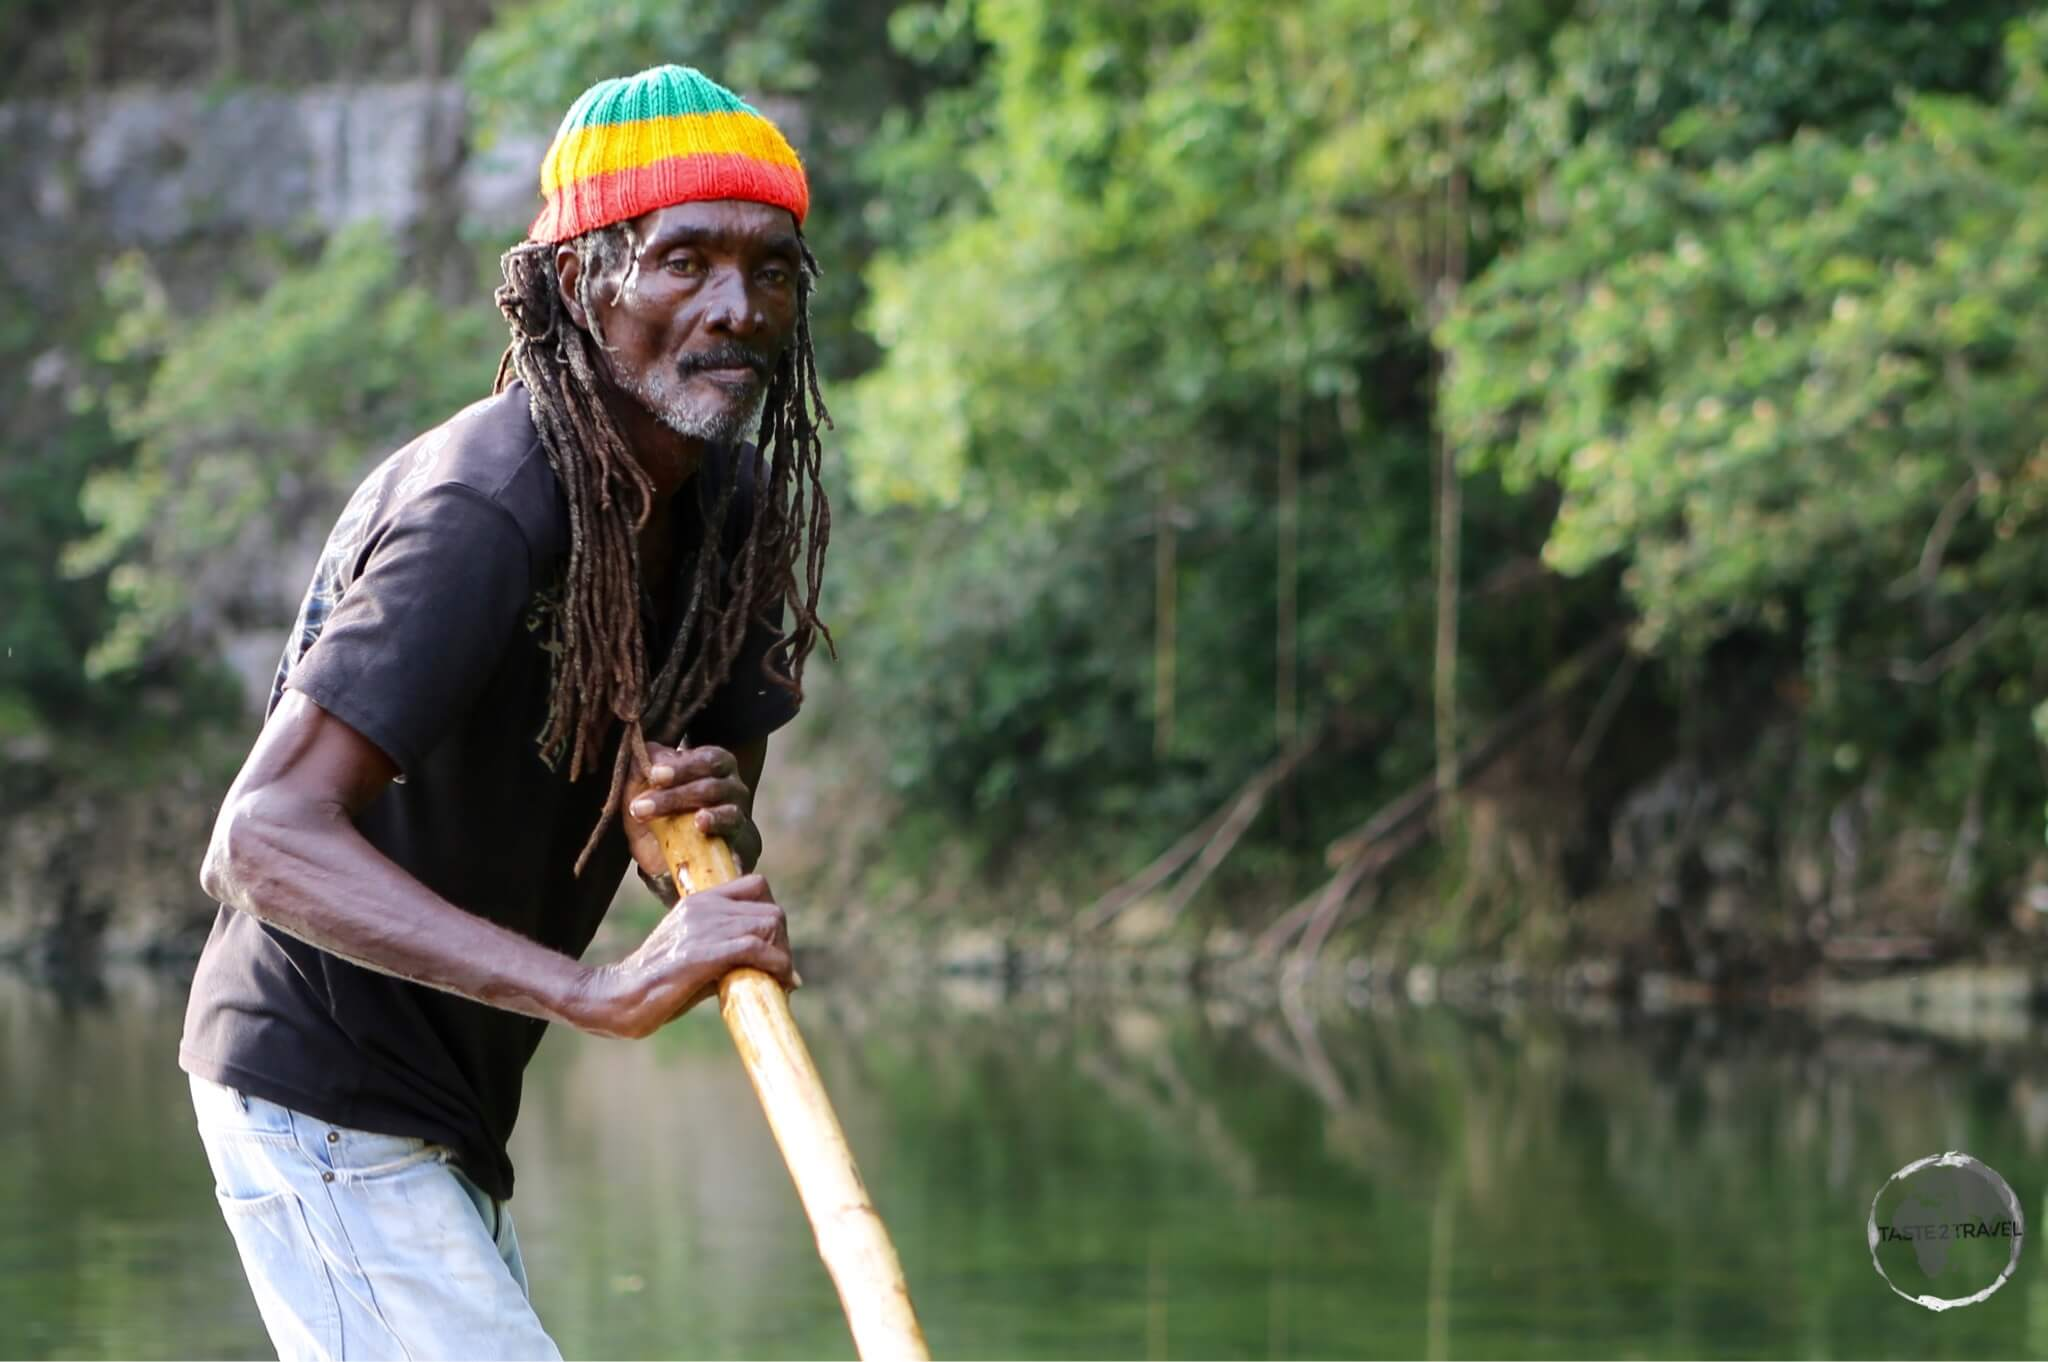 Rafting the Rio Grande with my 70-year old rasta guide.